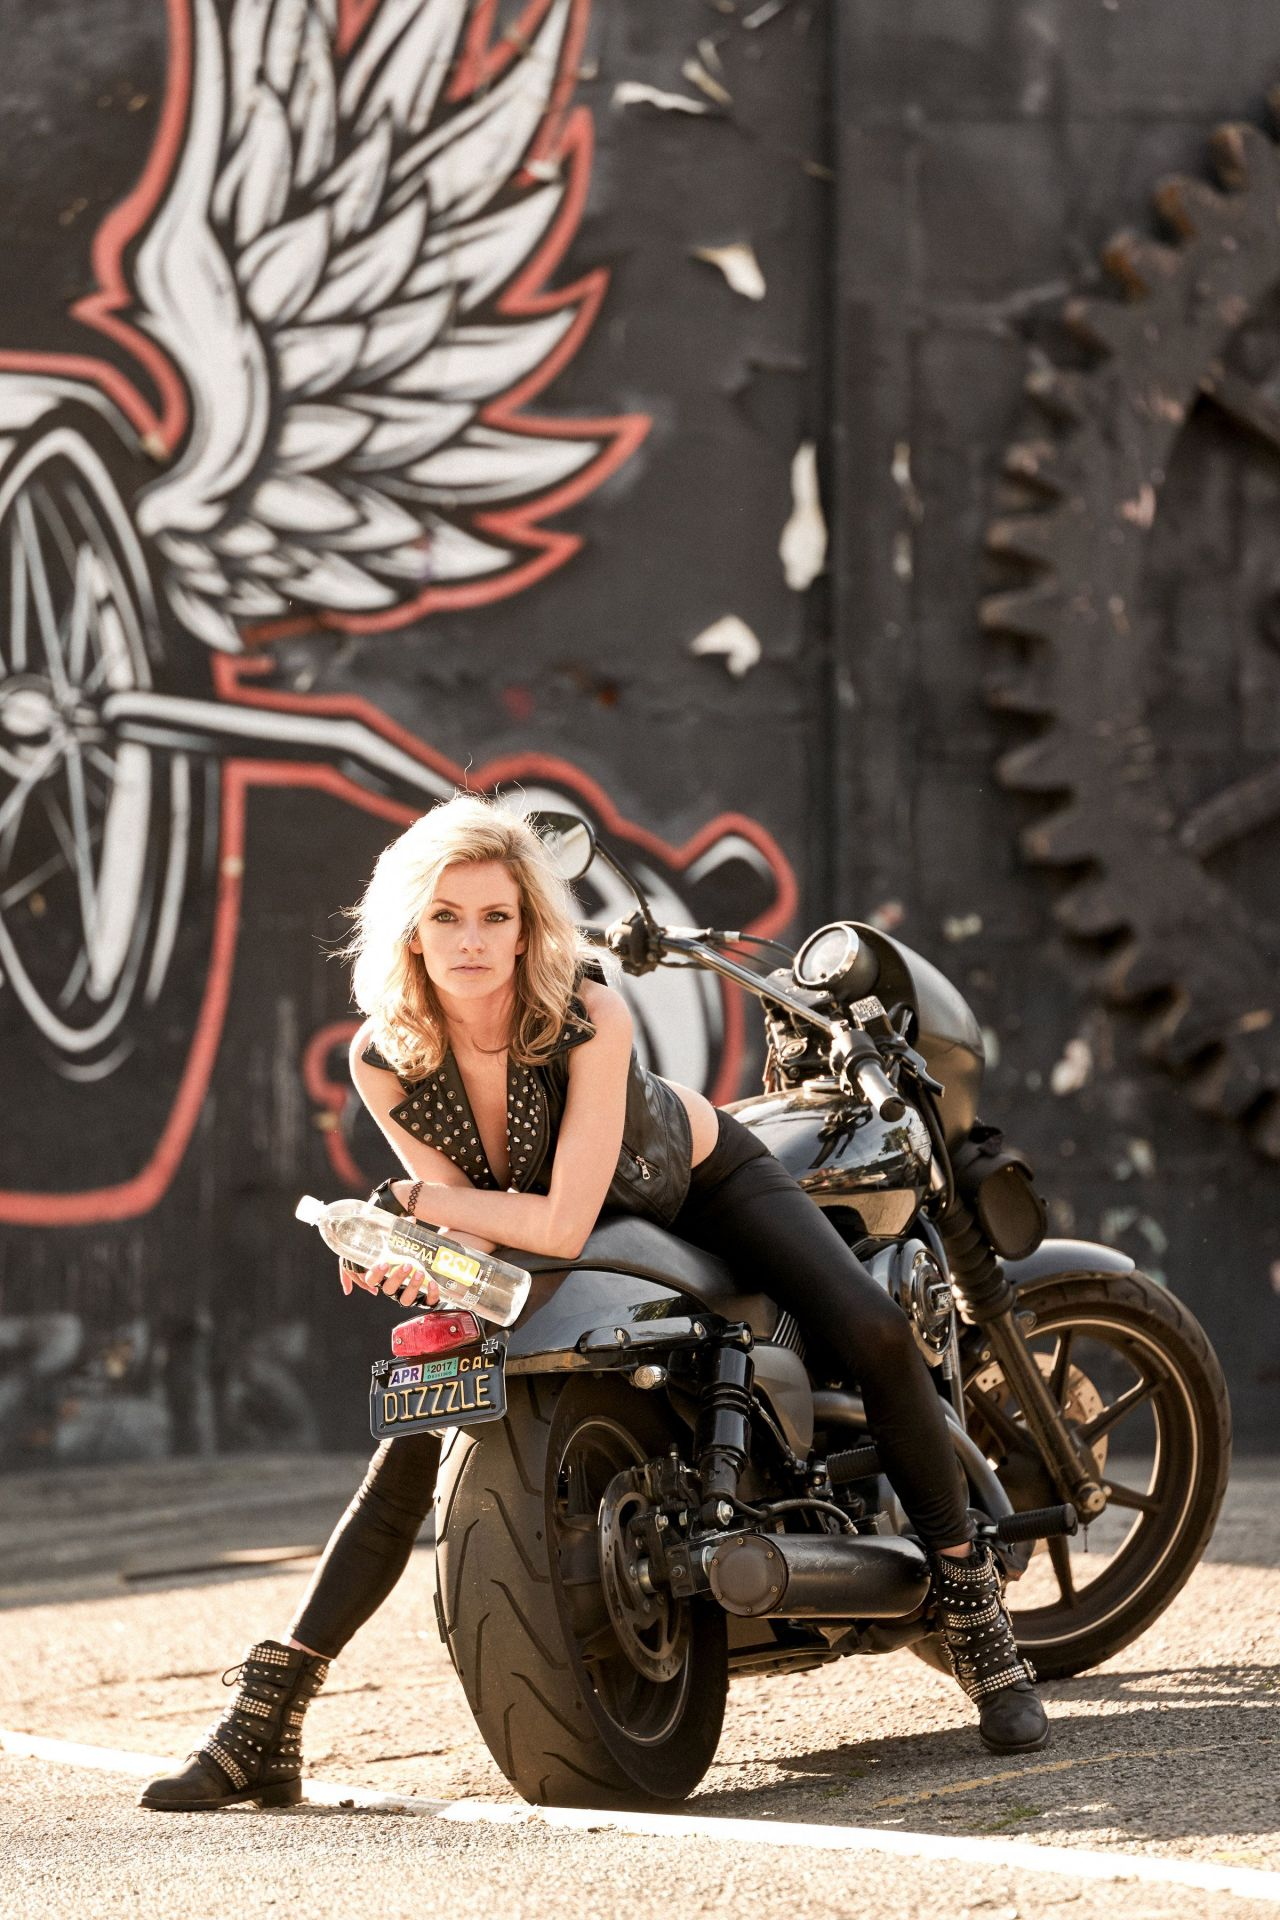 Cody Renee Cameron Poses for Bikers Themed Photoshoot in